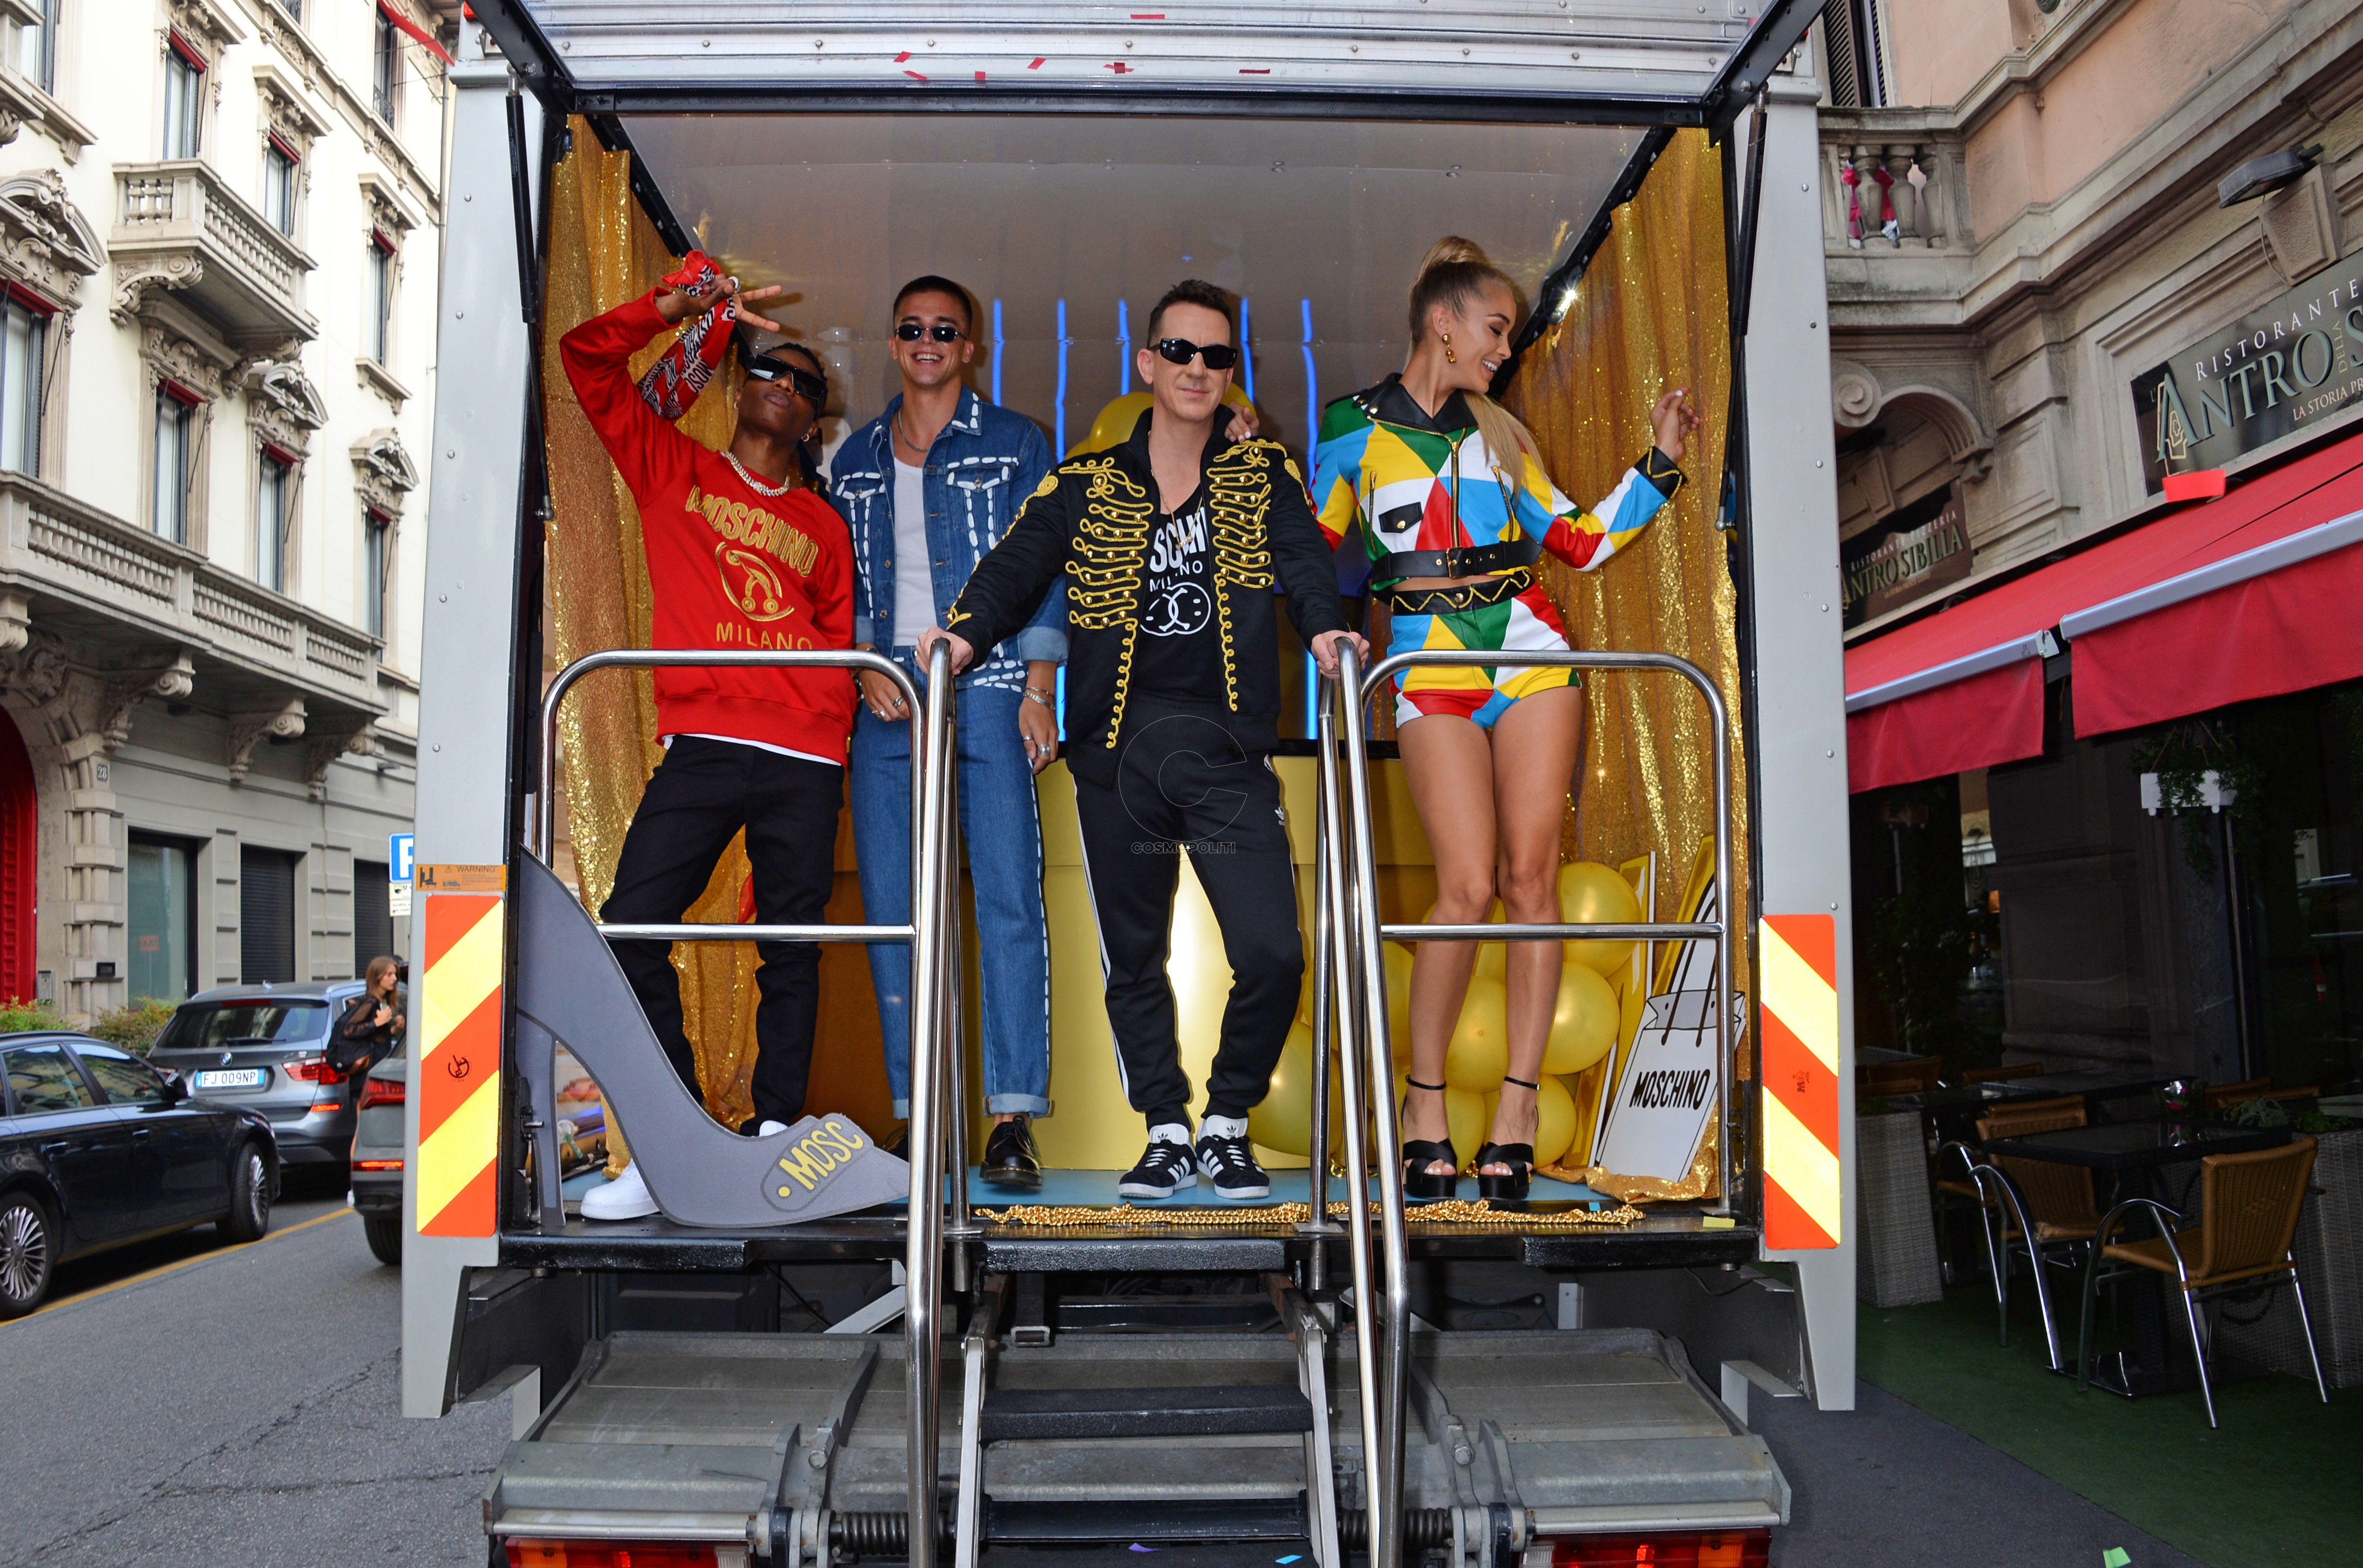 MILAN, ITALY - SEPTEMBER 19: (L to R) WizKid, River Viiperi, Jeremy Scott and Jasmine Sanders aka Golden Barbie launch the CIROC x Moschino collaboration during Milan Fashion Week aboard the CIROC truck in the centre of Milan. CIROC luxury vodka has partnered with Italian fashion house Moschino, bringing together fashion's most playful brands. Pi Credit: Dave Benett